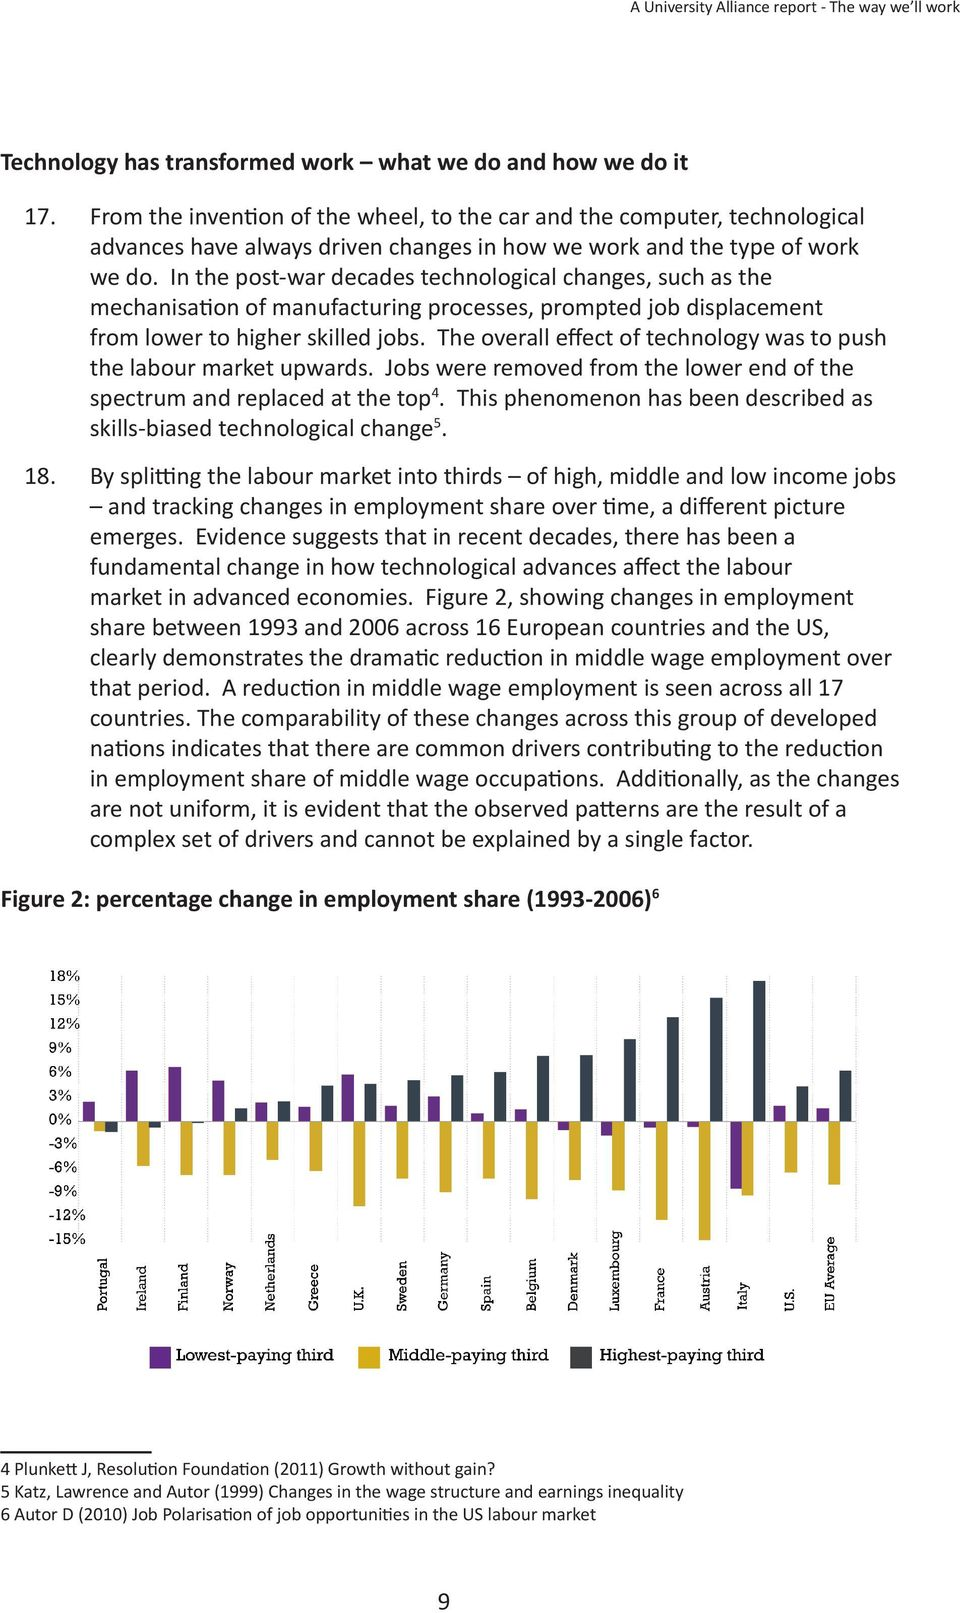 In the post-war decades technological changes, such as the mechanisation of manufacturing processes, prompted job displacement from lower to higher skilled jobs.